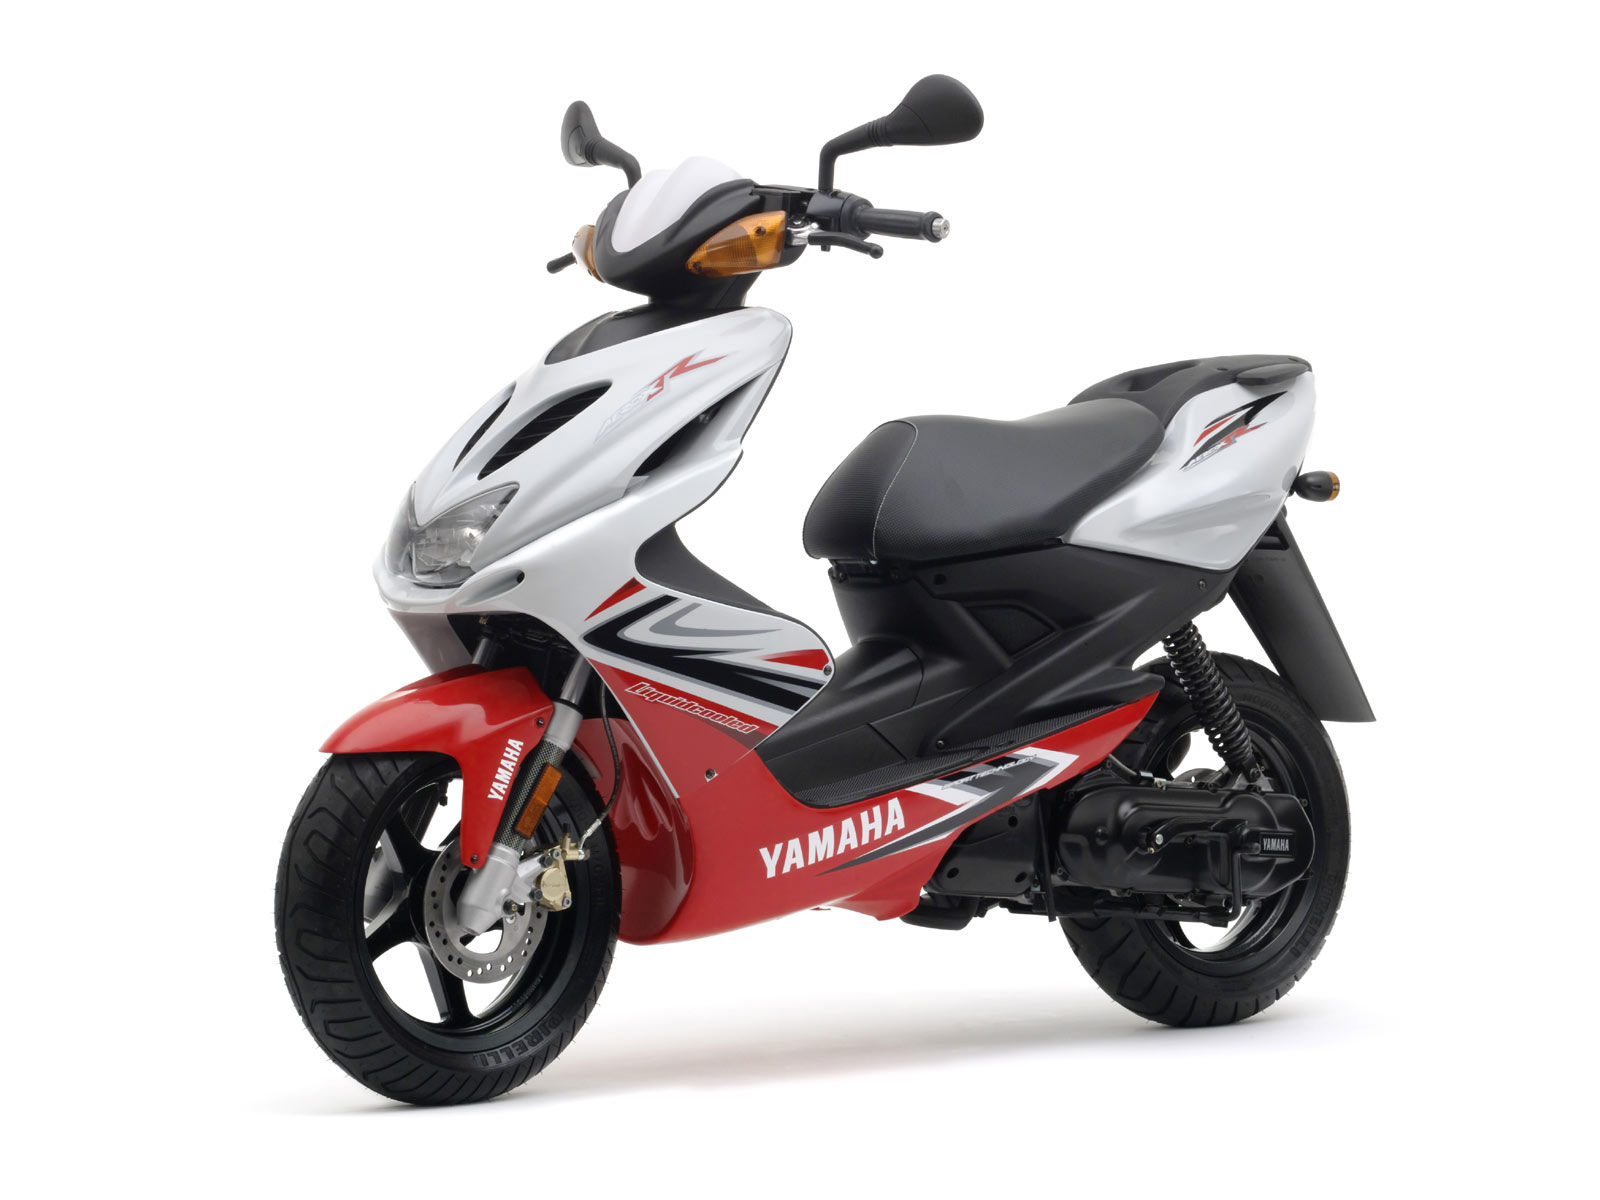 2008 yamaha aerox r scooter pictures specifications. Black Bedroom Furniture Sets. Home Design Ideas